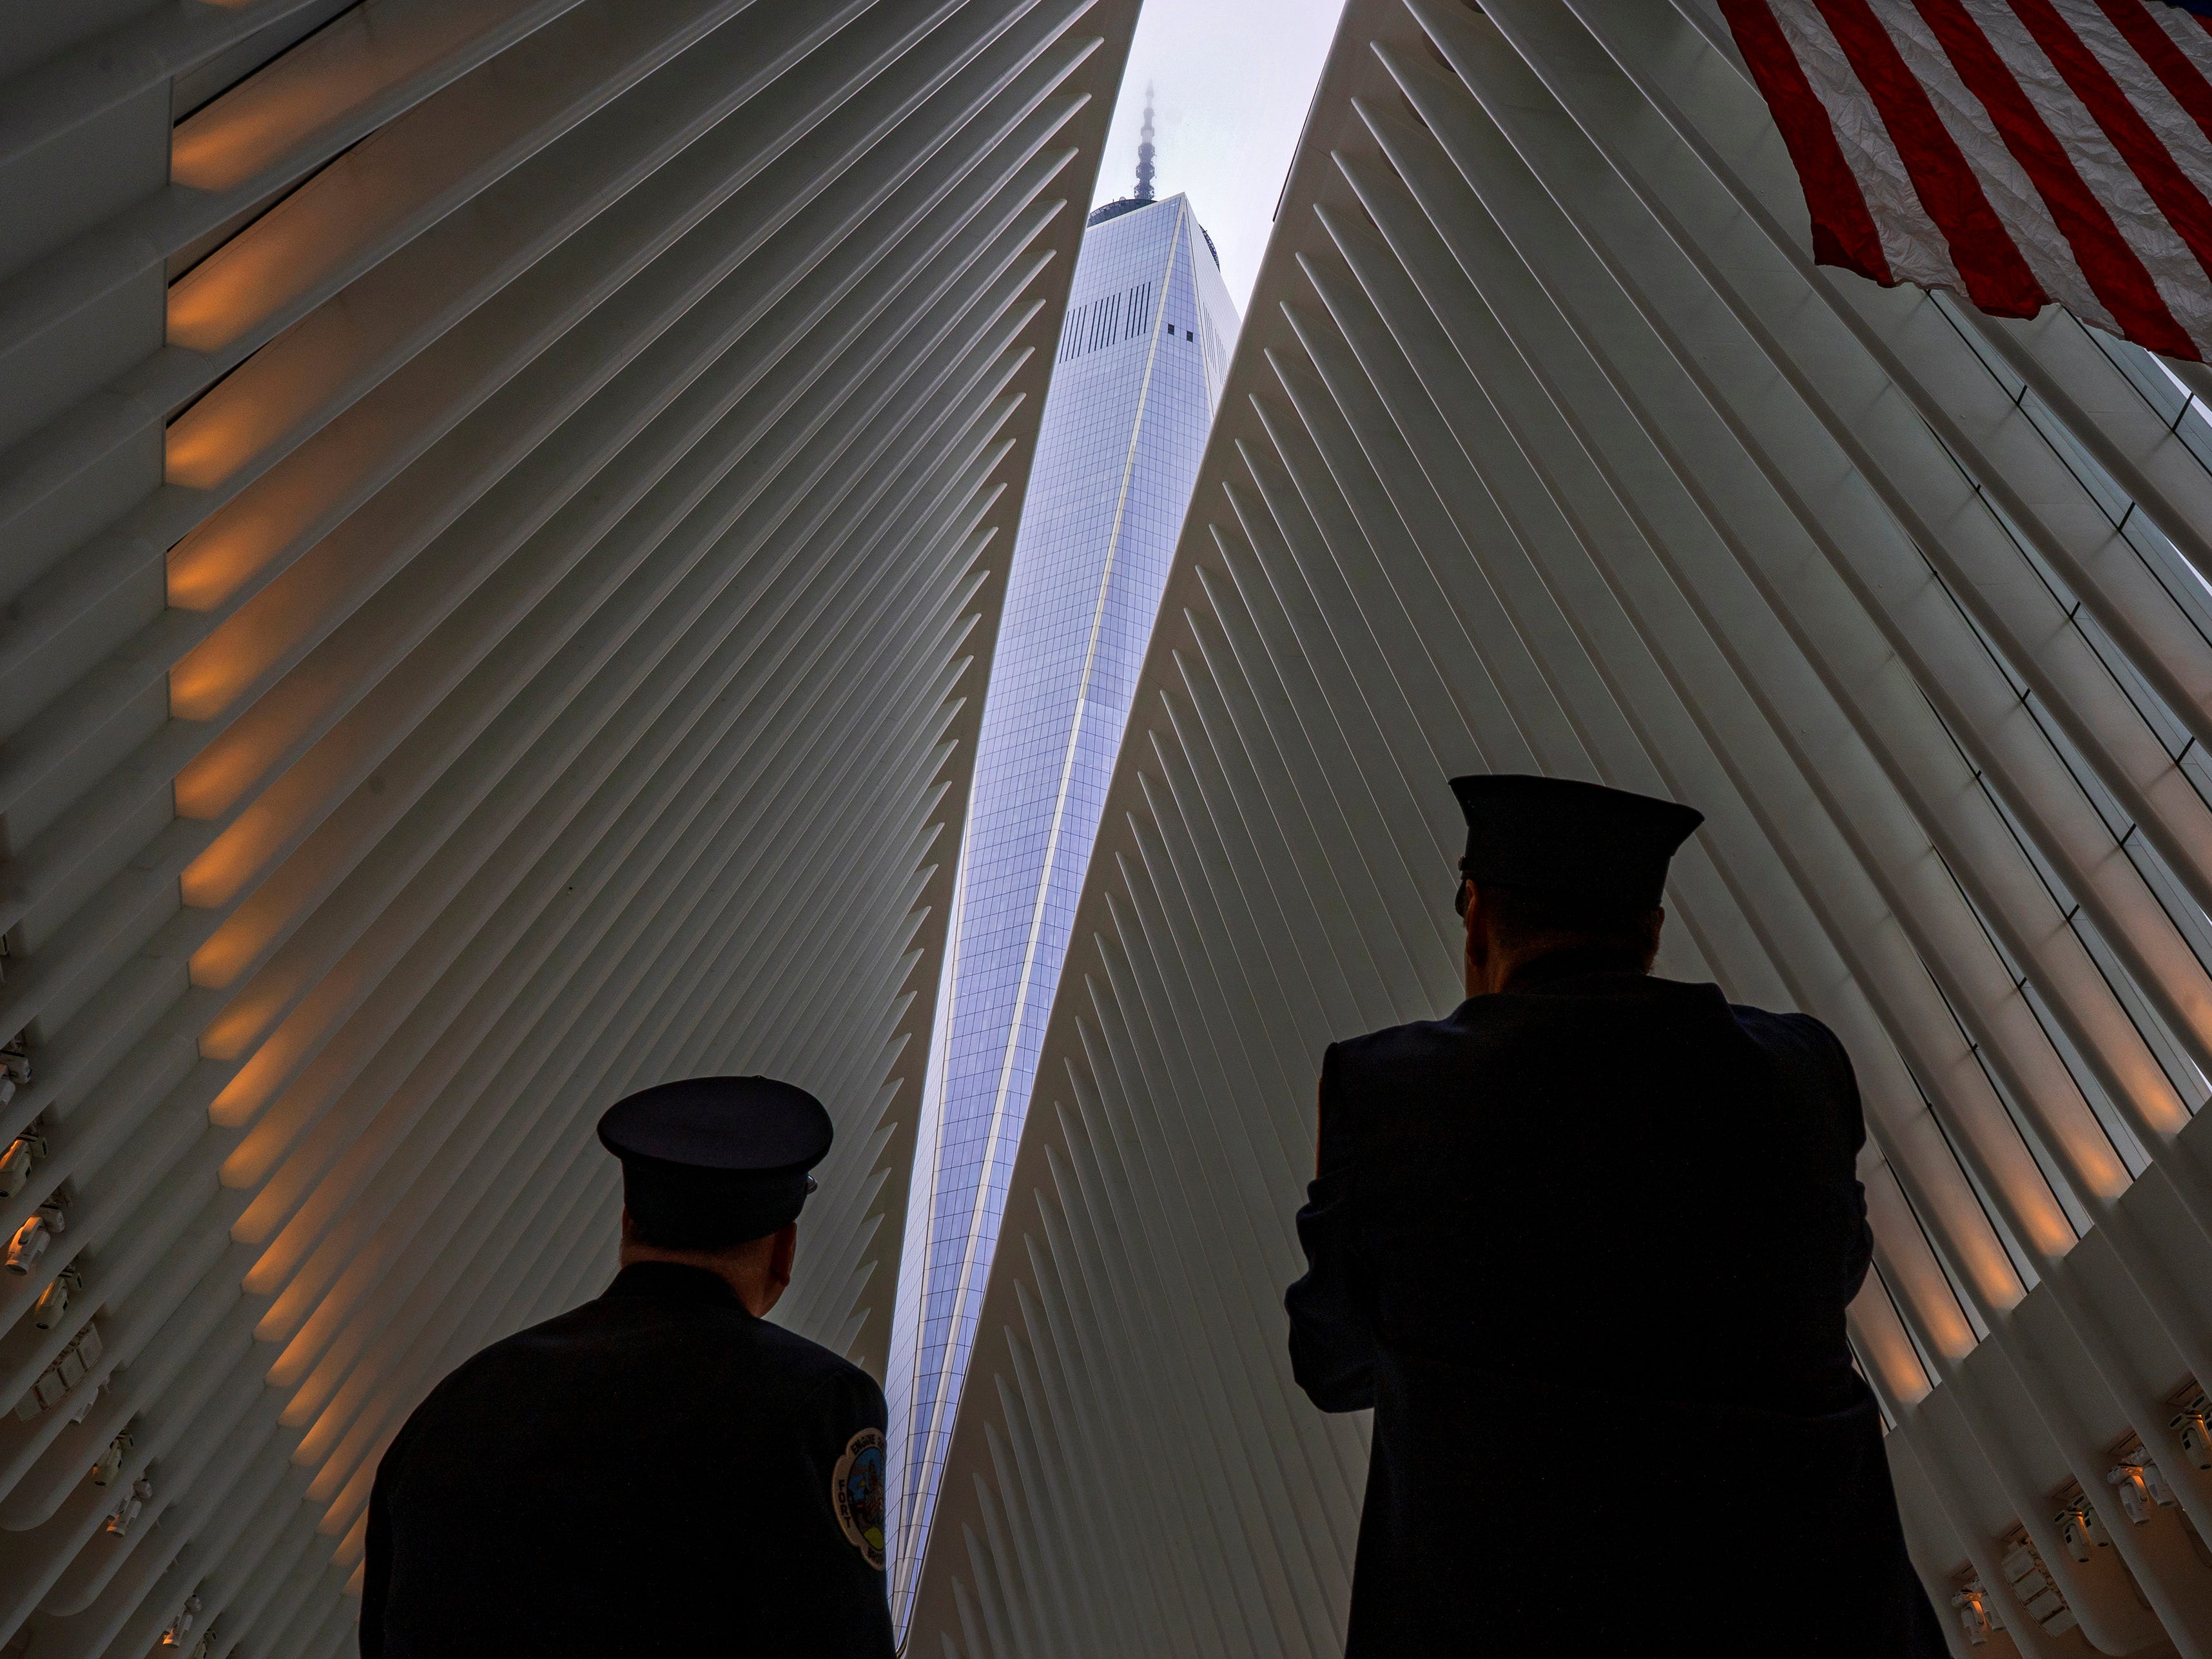 Two members of the New York City fire department look towards One World Trade Center through the open ceiling of the Oculus, part of the World Trade Center transportation hub in New York, Tuesday, Sept. 11, 2018, the anniversary of 9/11 terrorist attacks. The transit hall ceiling window was opened just before 10:28 a.m., marking the moment that the North Tower of the World Trade Center collapsed on September 11, 2001.